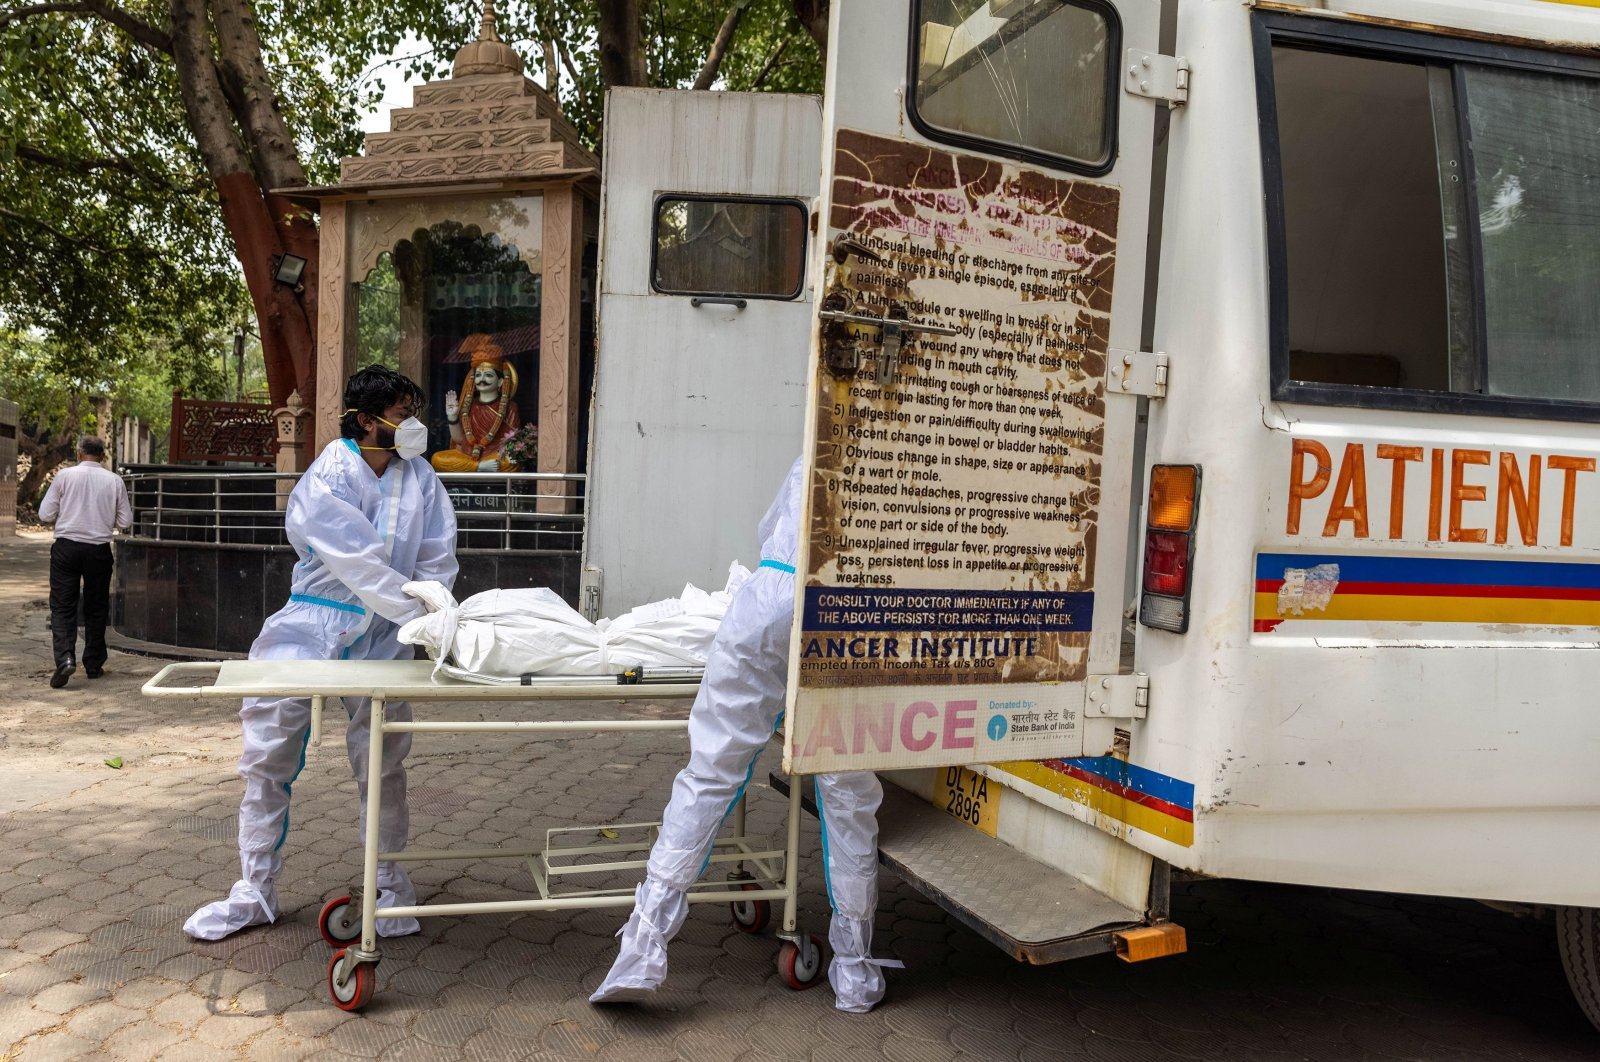 Health workers carry the body of a person, who died from complications related to COVID-19, for cremation at a crematorium in New Delhi, India, June 10, 2021. (Reuters Photo)